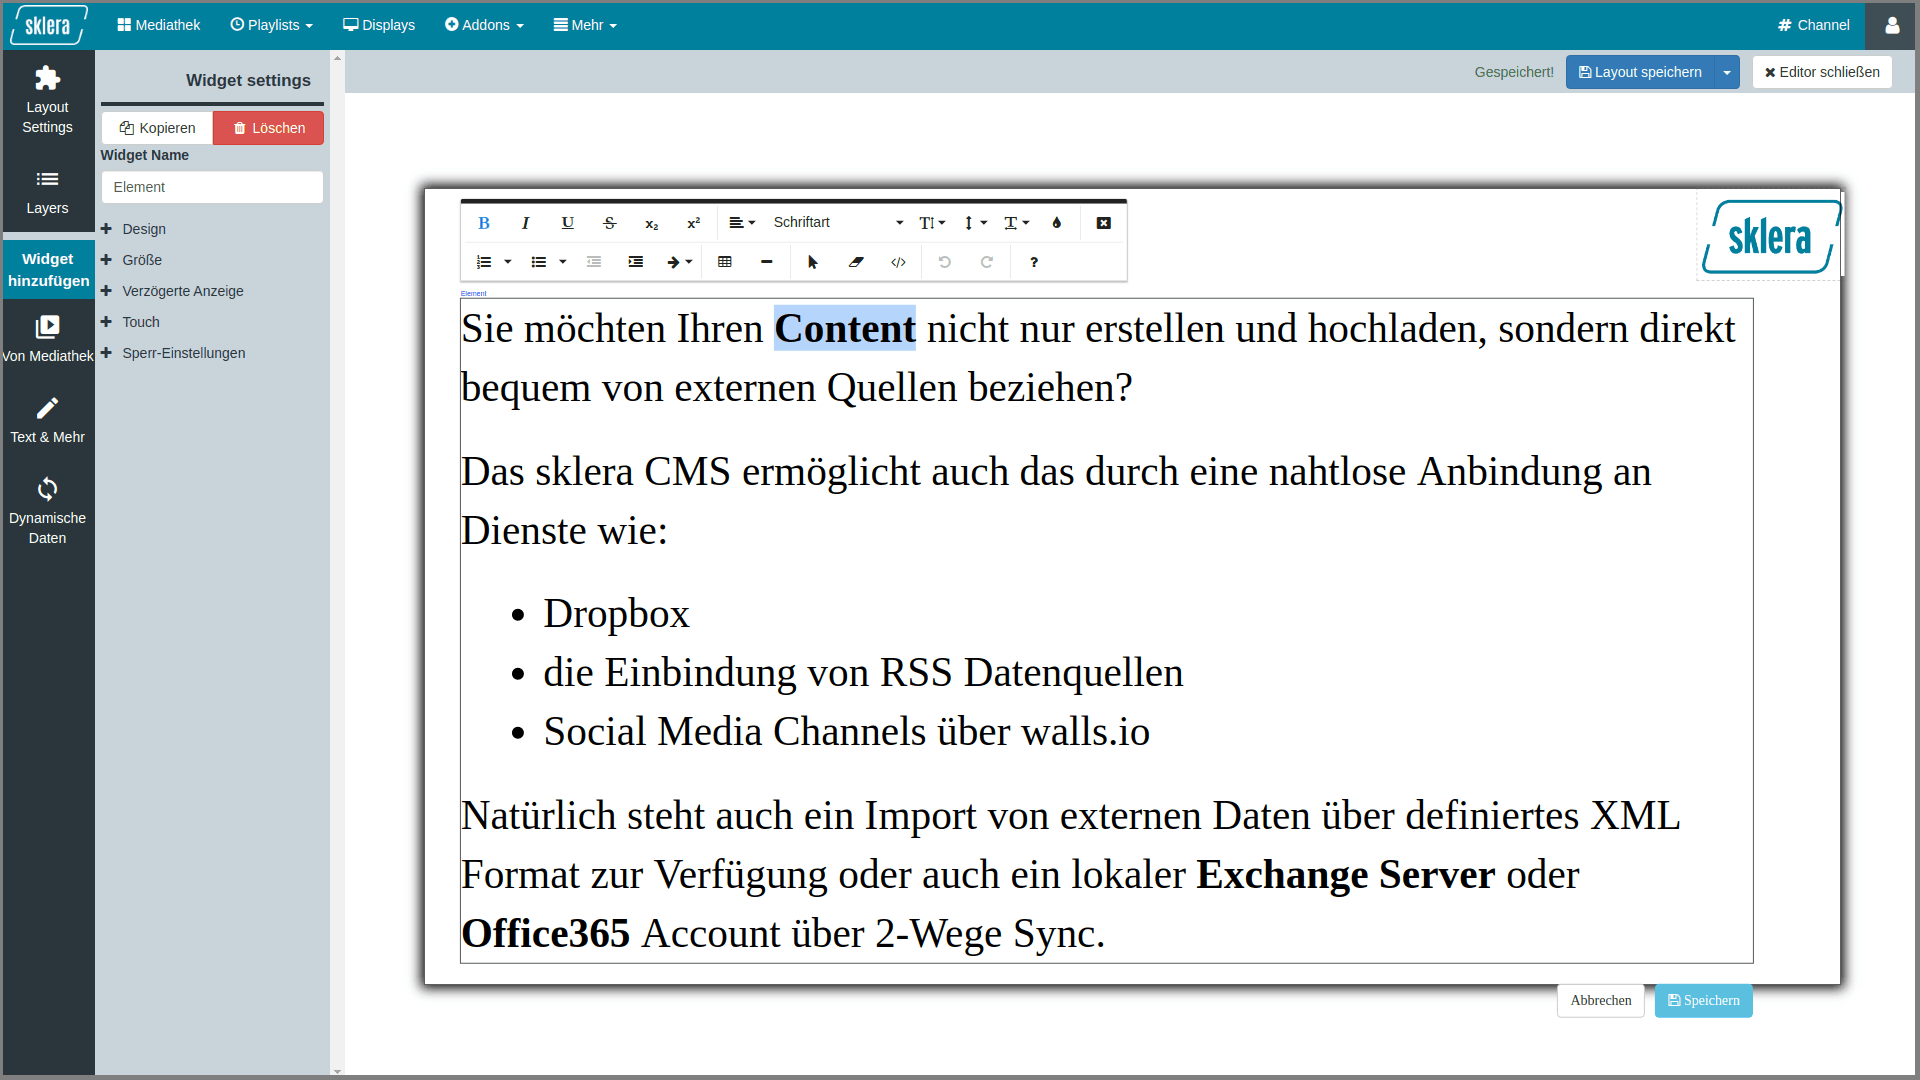 This image shows the WYSIWYG editor of the layout designer.